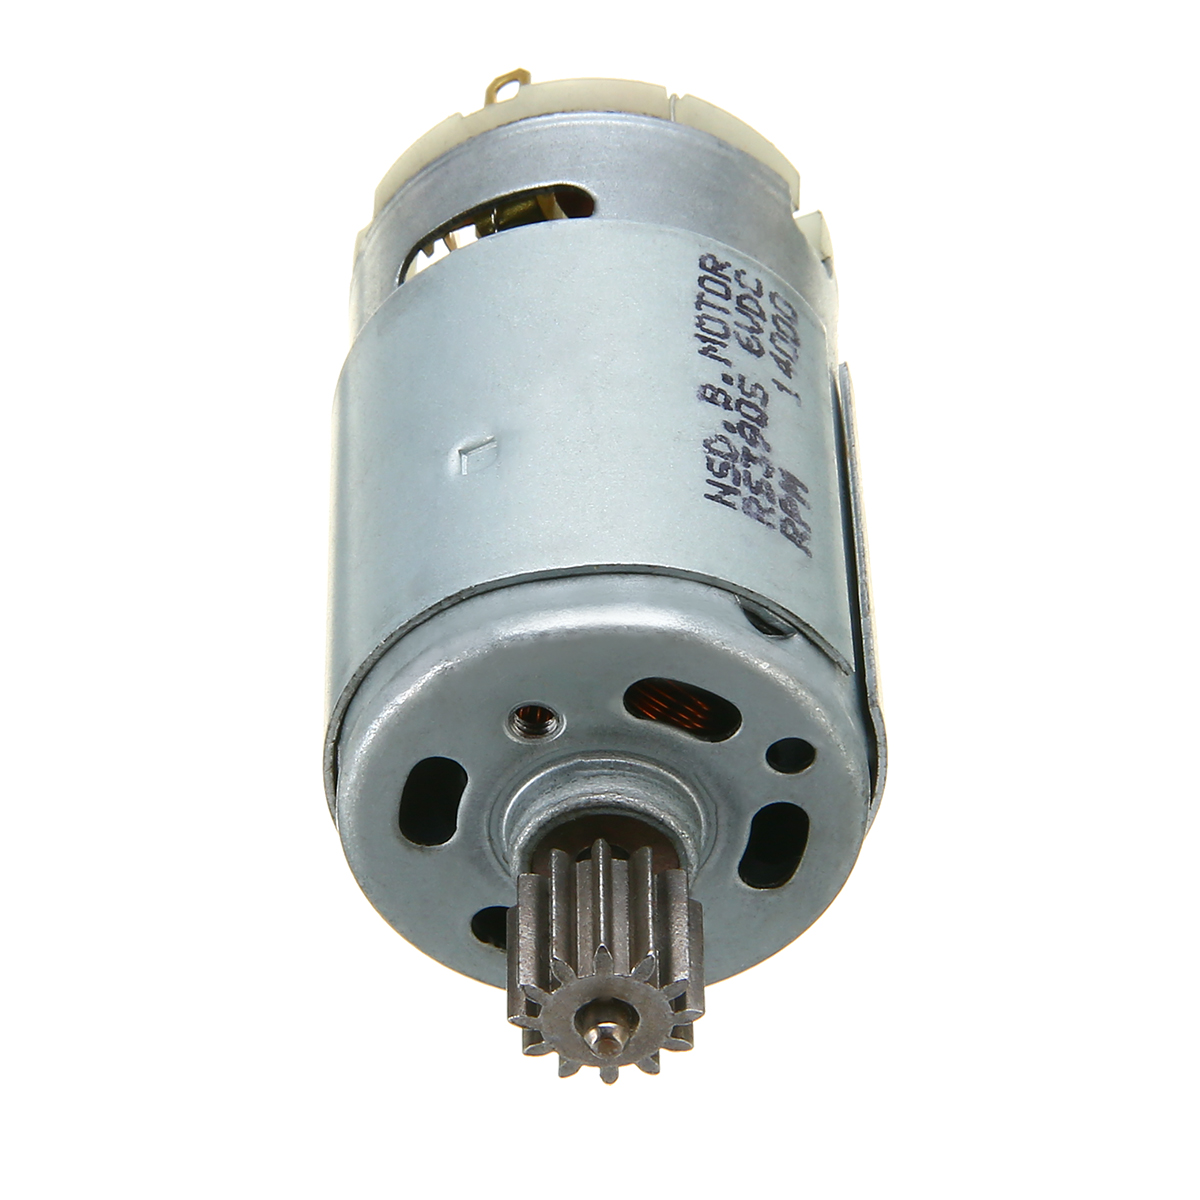 New RS390 Electric Motor 6V 14000RPM 25-35W For Kid Ride On Car Bike Toy Gear Box Motor 70*28mm запчасти для детского транспорта motor 6v 12v rs390